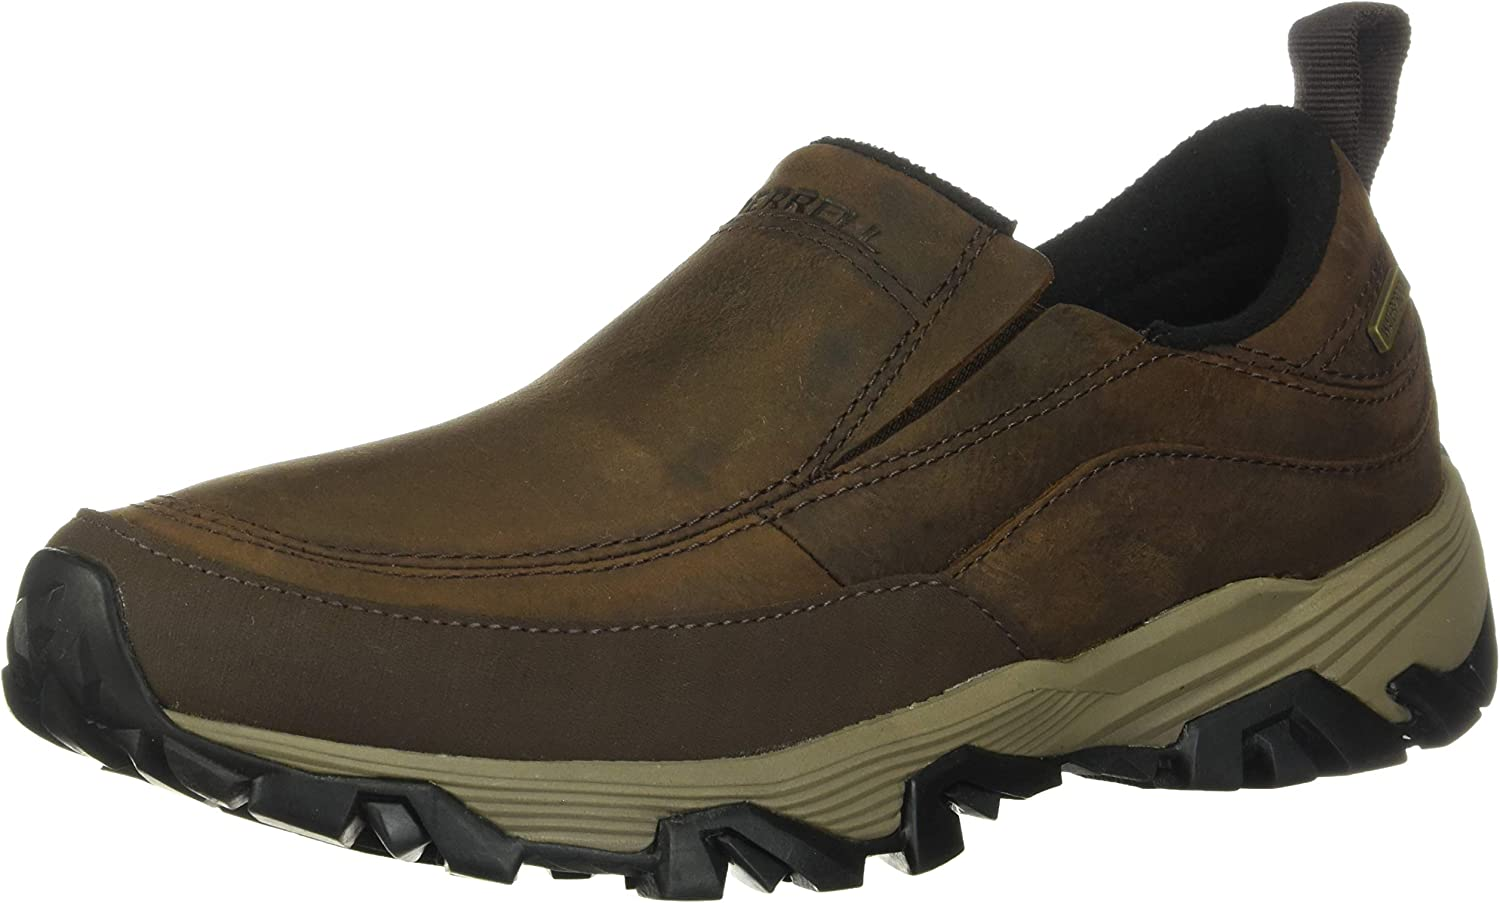 Merrell Women's Coldpack Ice+ Moc Wp Clog